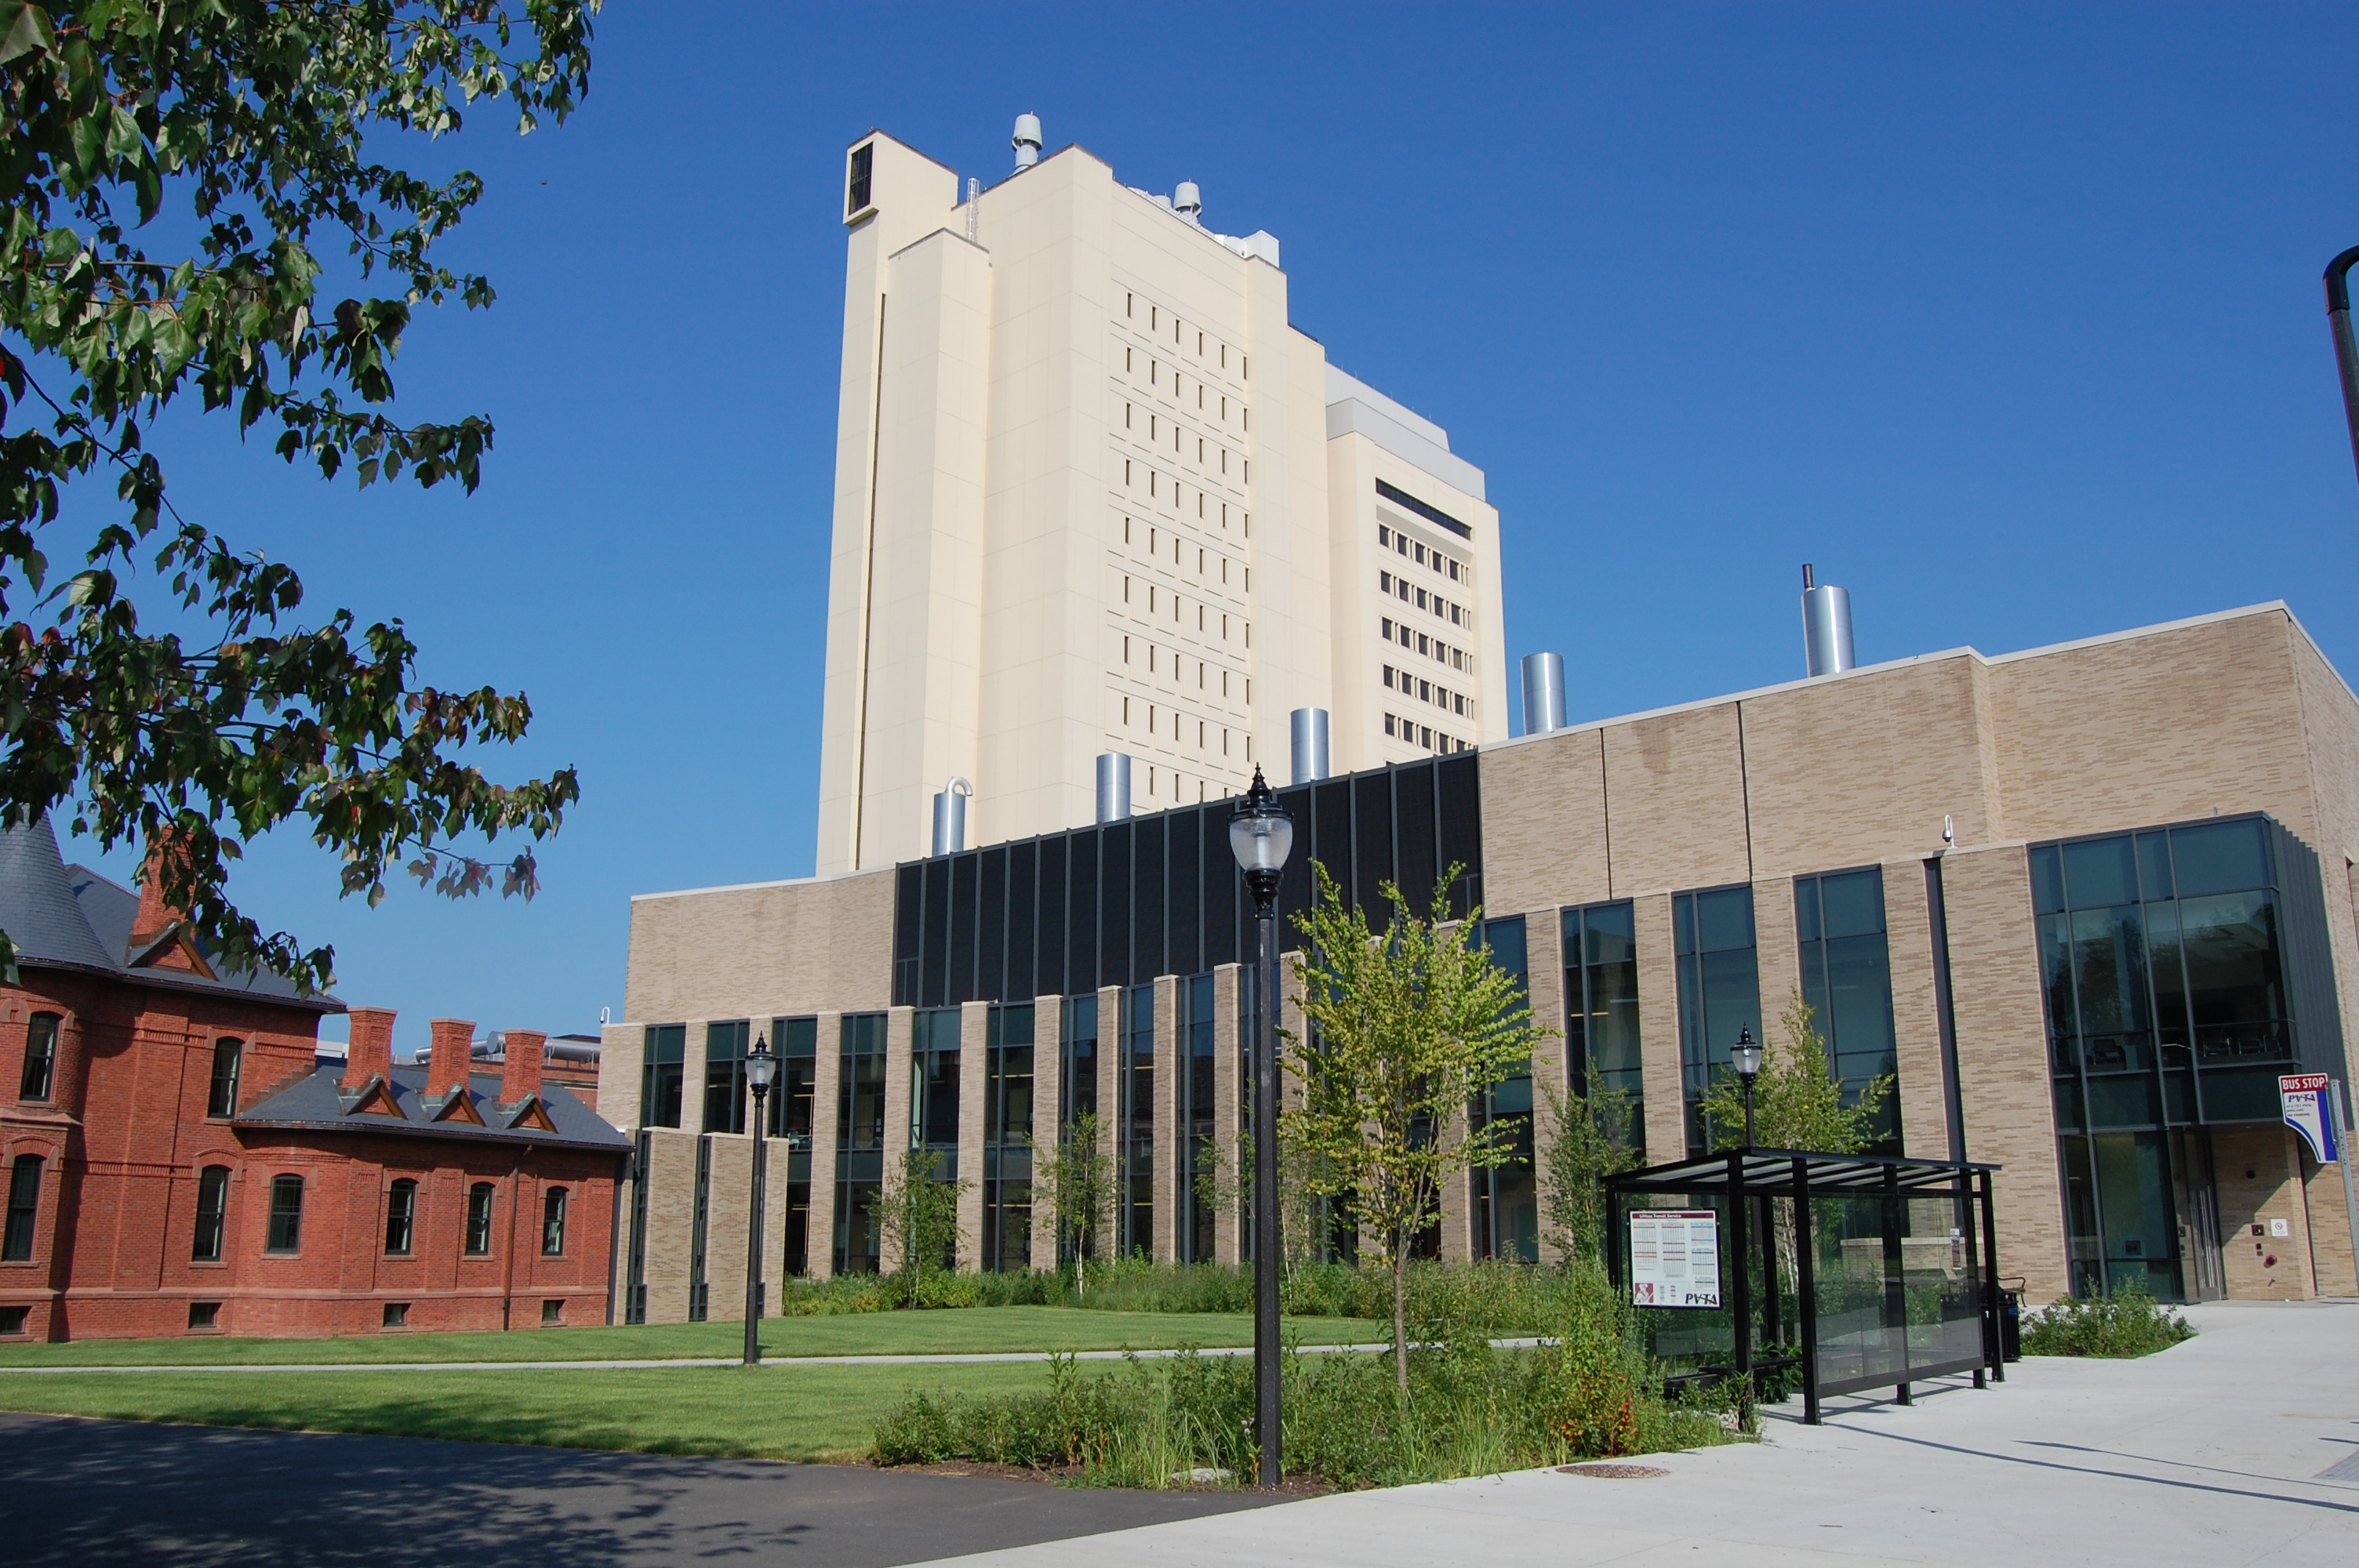 Psb and LGRT buildings